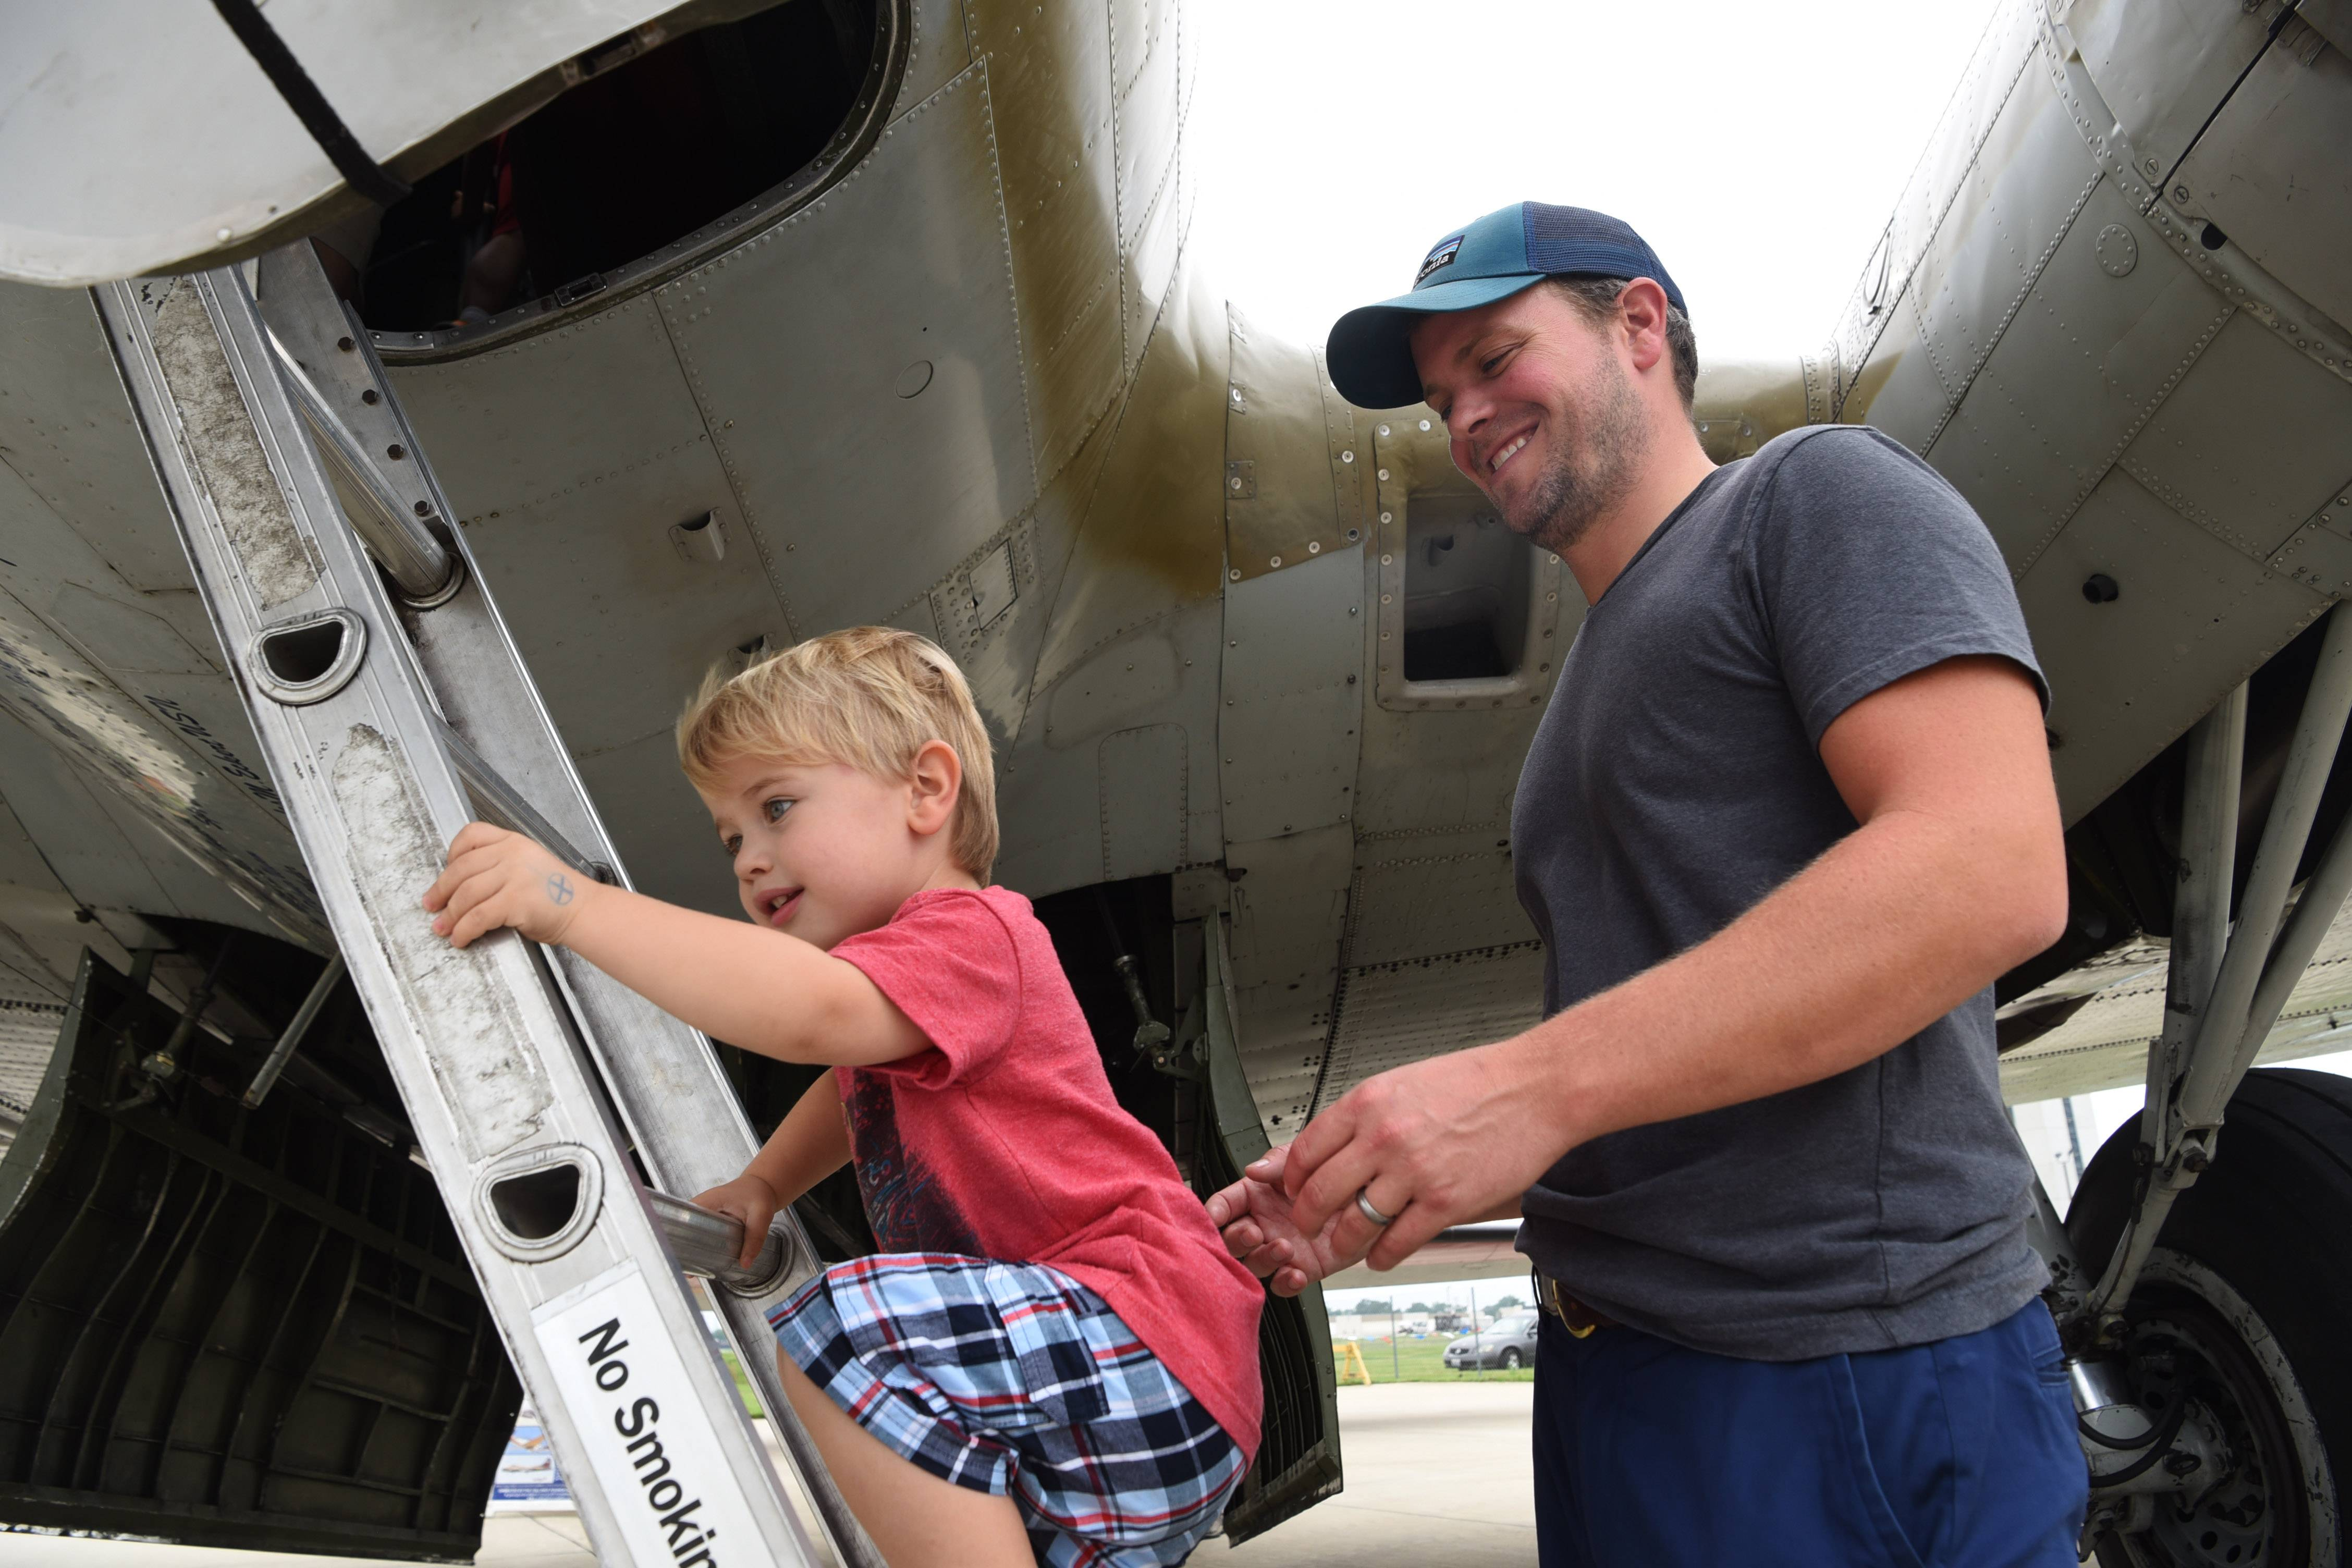 Hunter Galbraith, 2, of Northfield, climbs into a B-17 Flying Fortress while he and his dad, Ian, visit the Wings of Freedom tour at Chicago Executive Airport in Wheeling Wednesday.